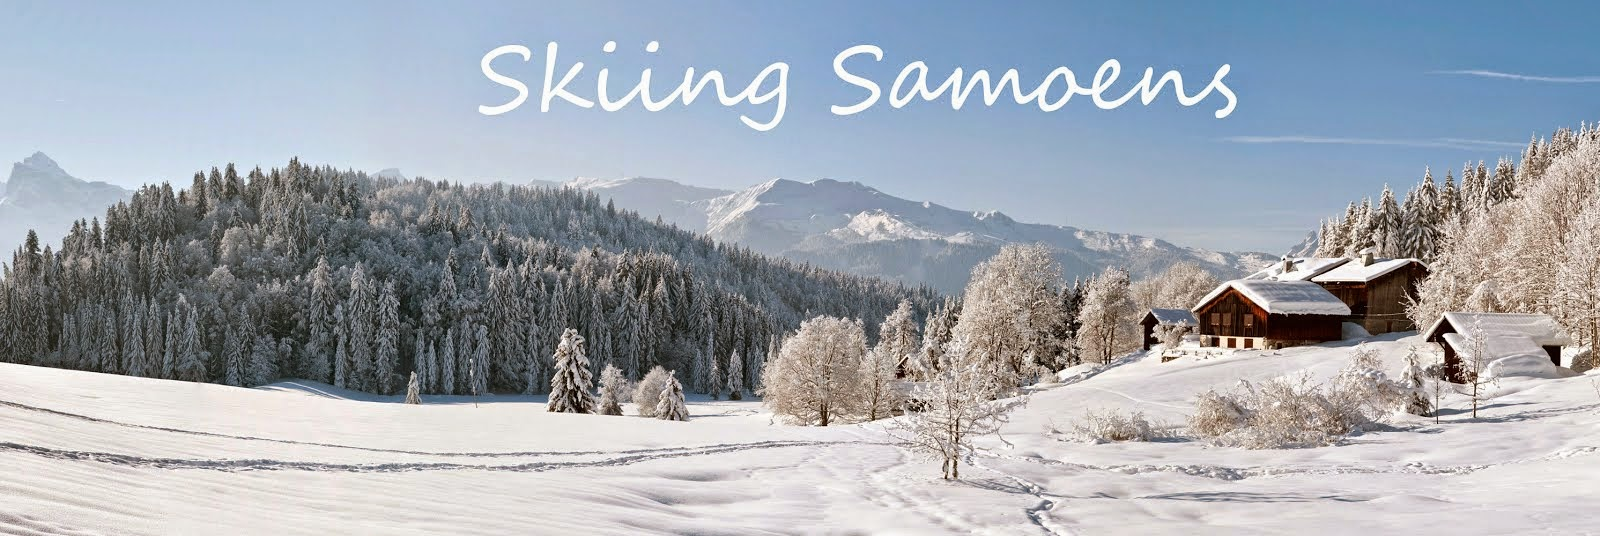 Skiing Samoens - Grand Massif - Alps